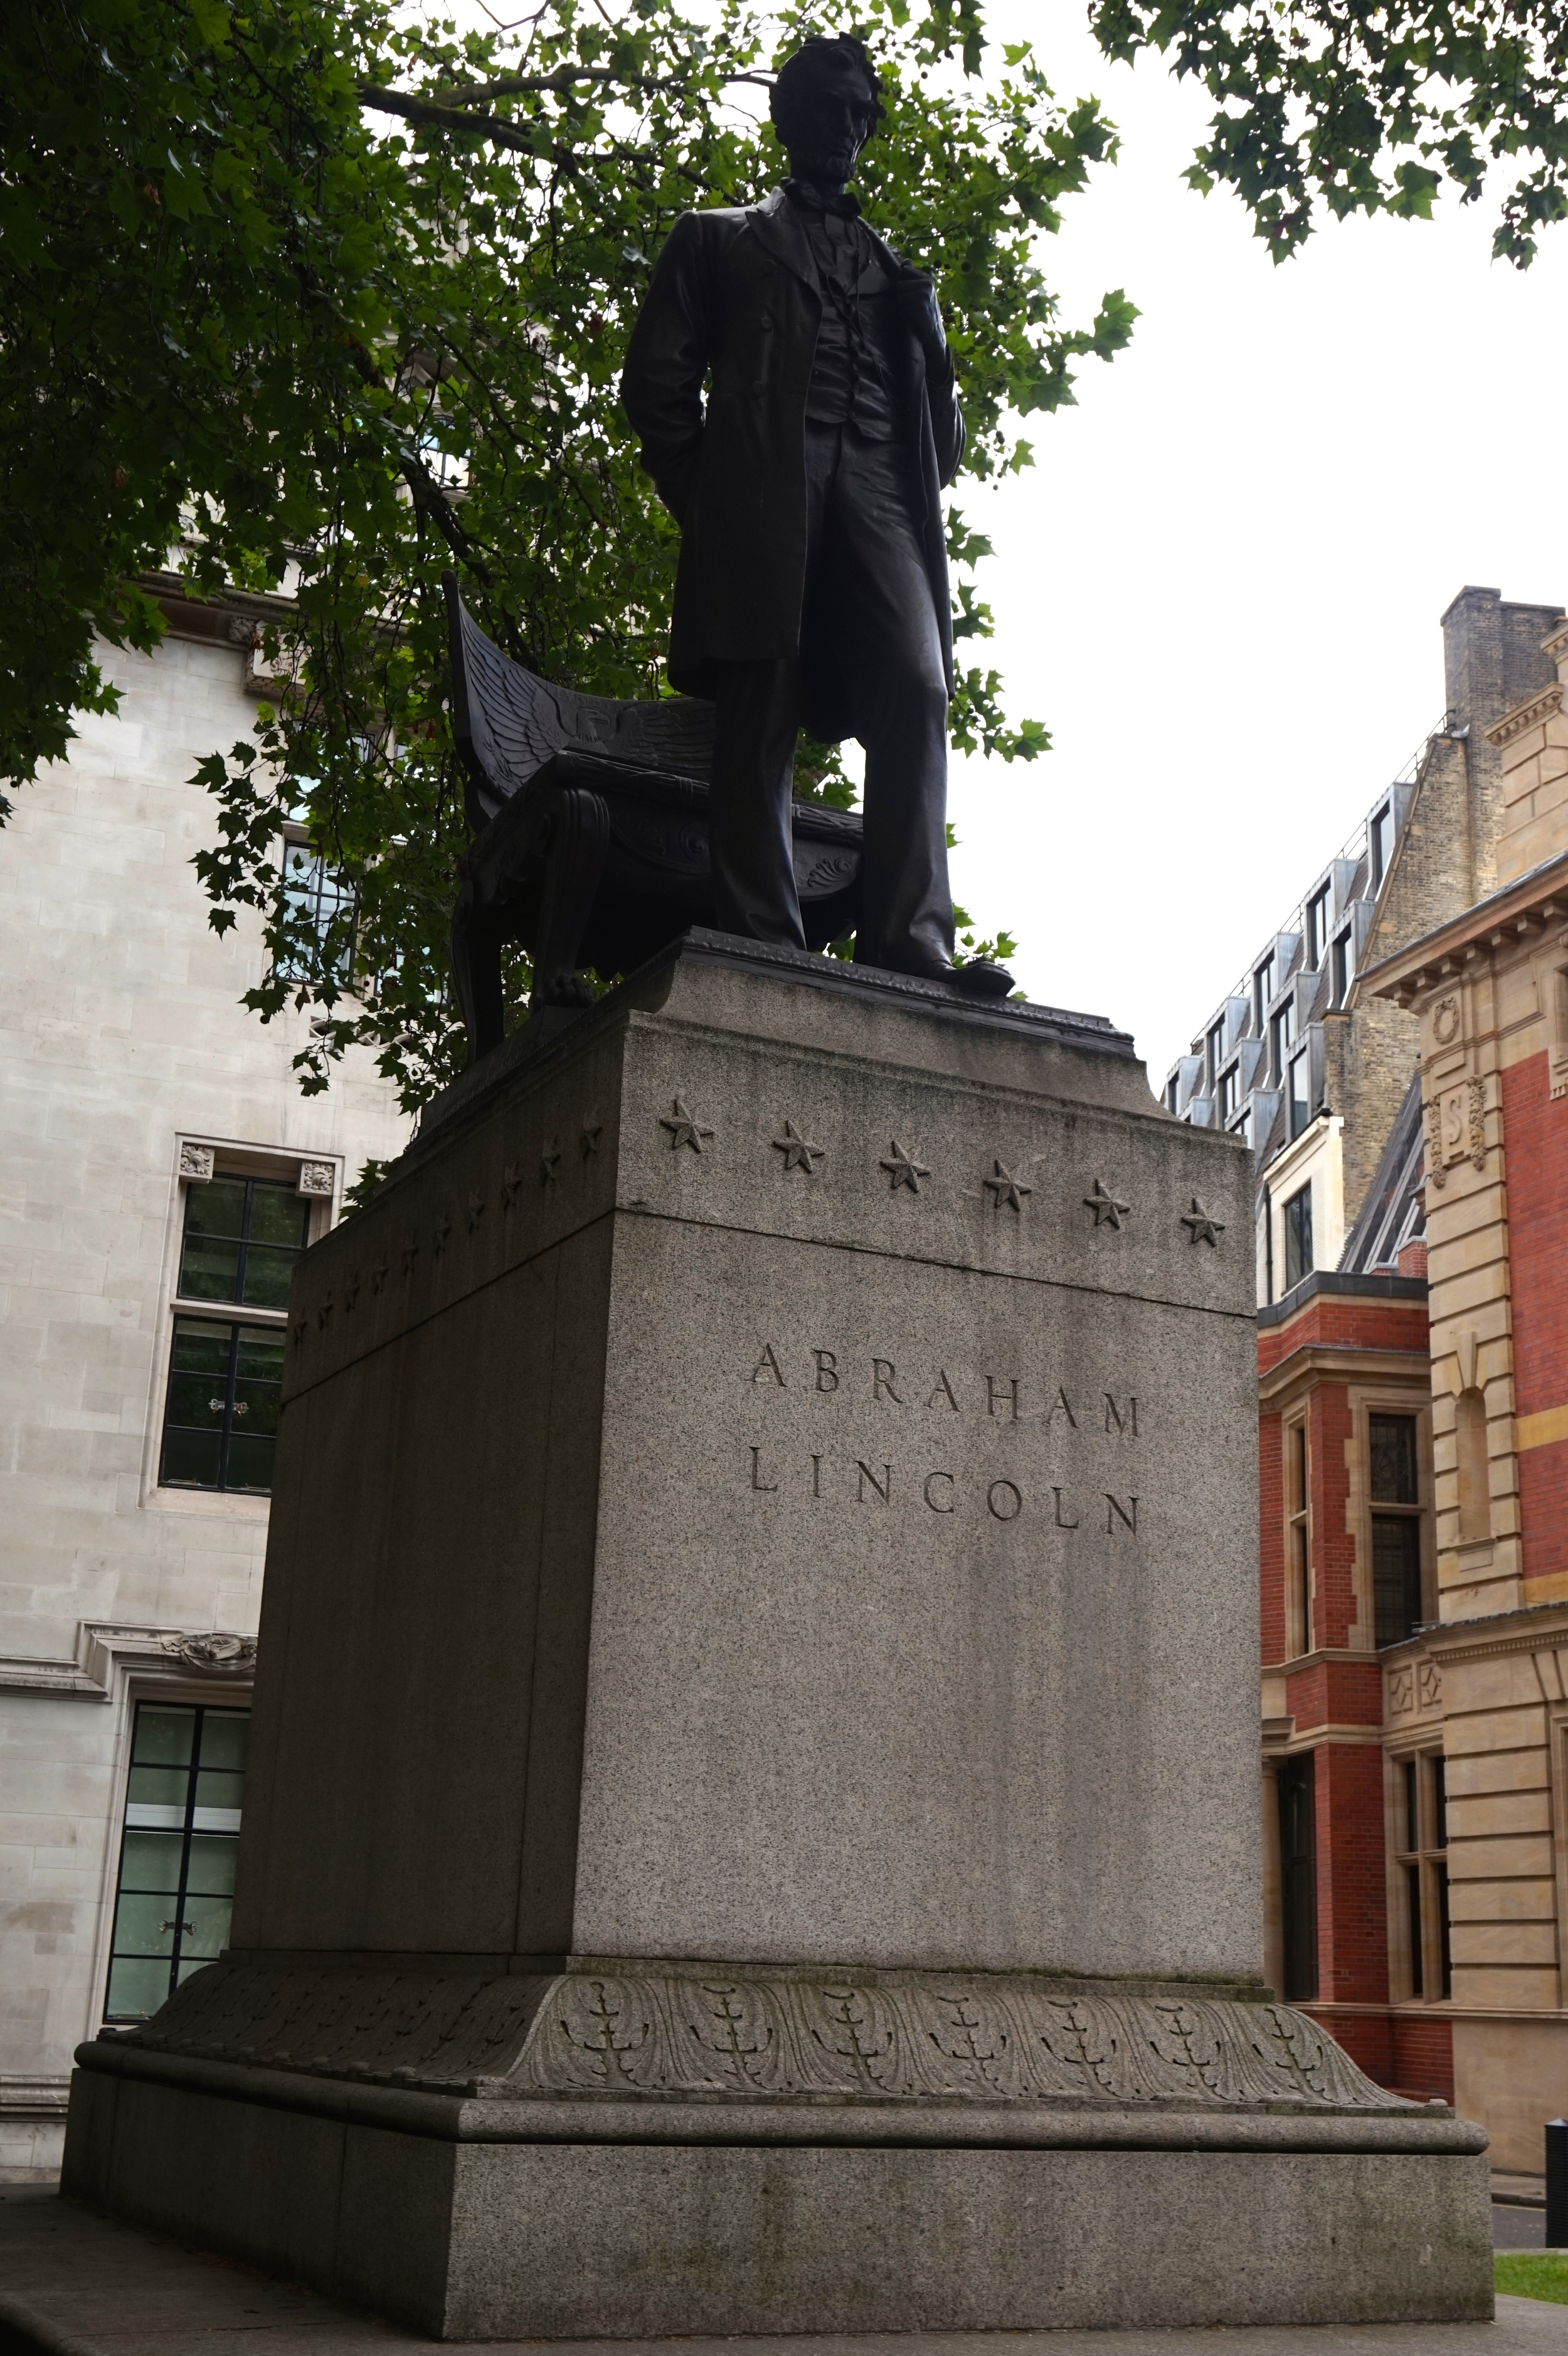 Lincoln in London